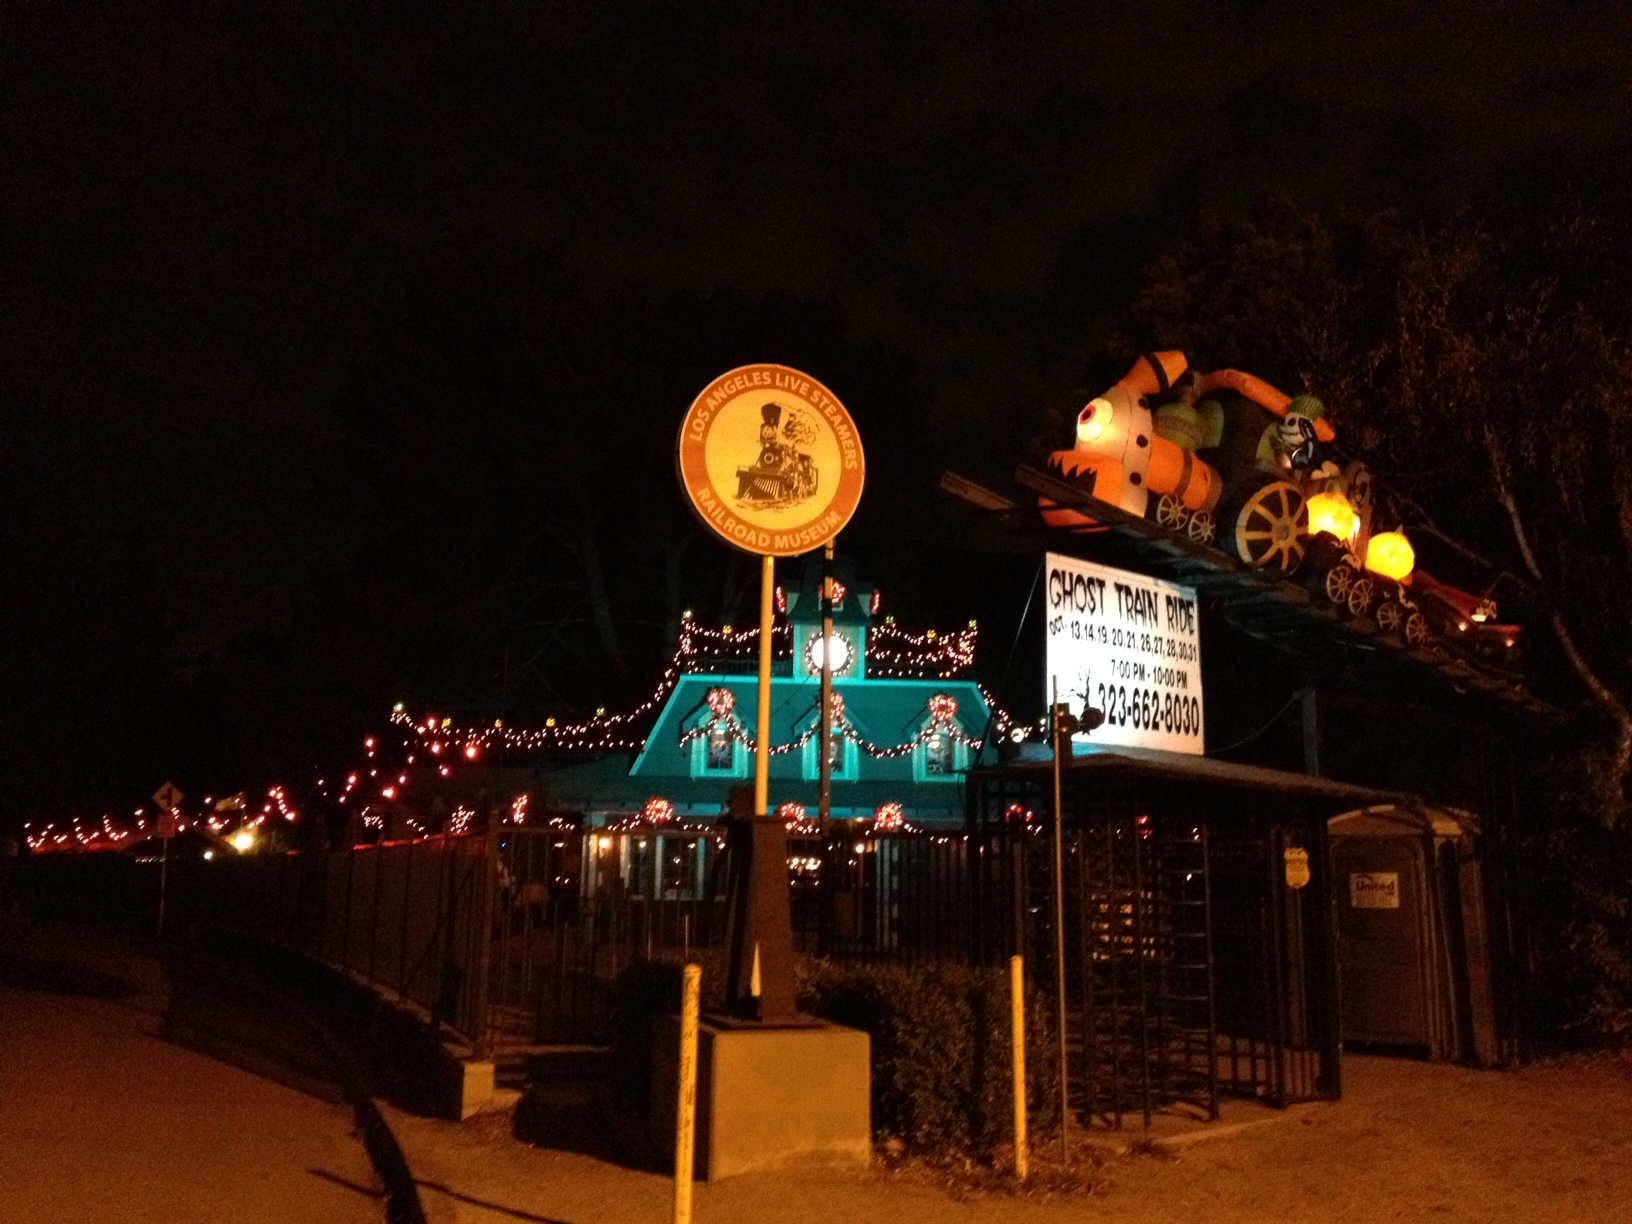 lals front gate - Frontgate Halloween